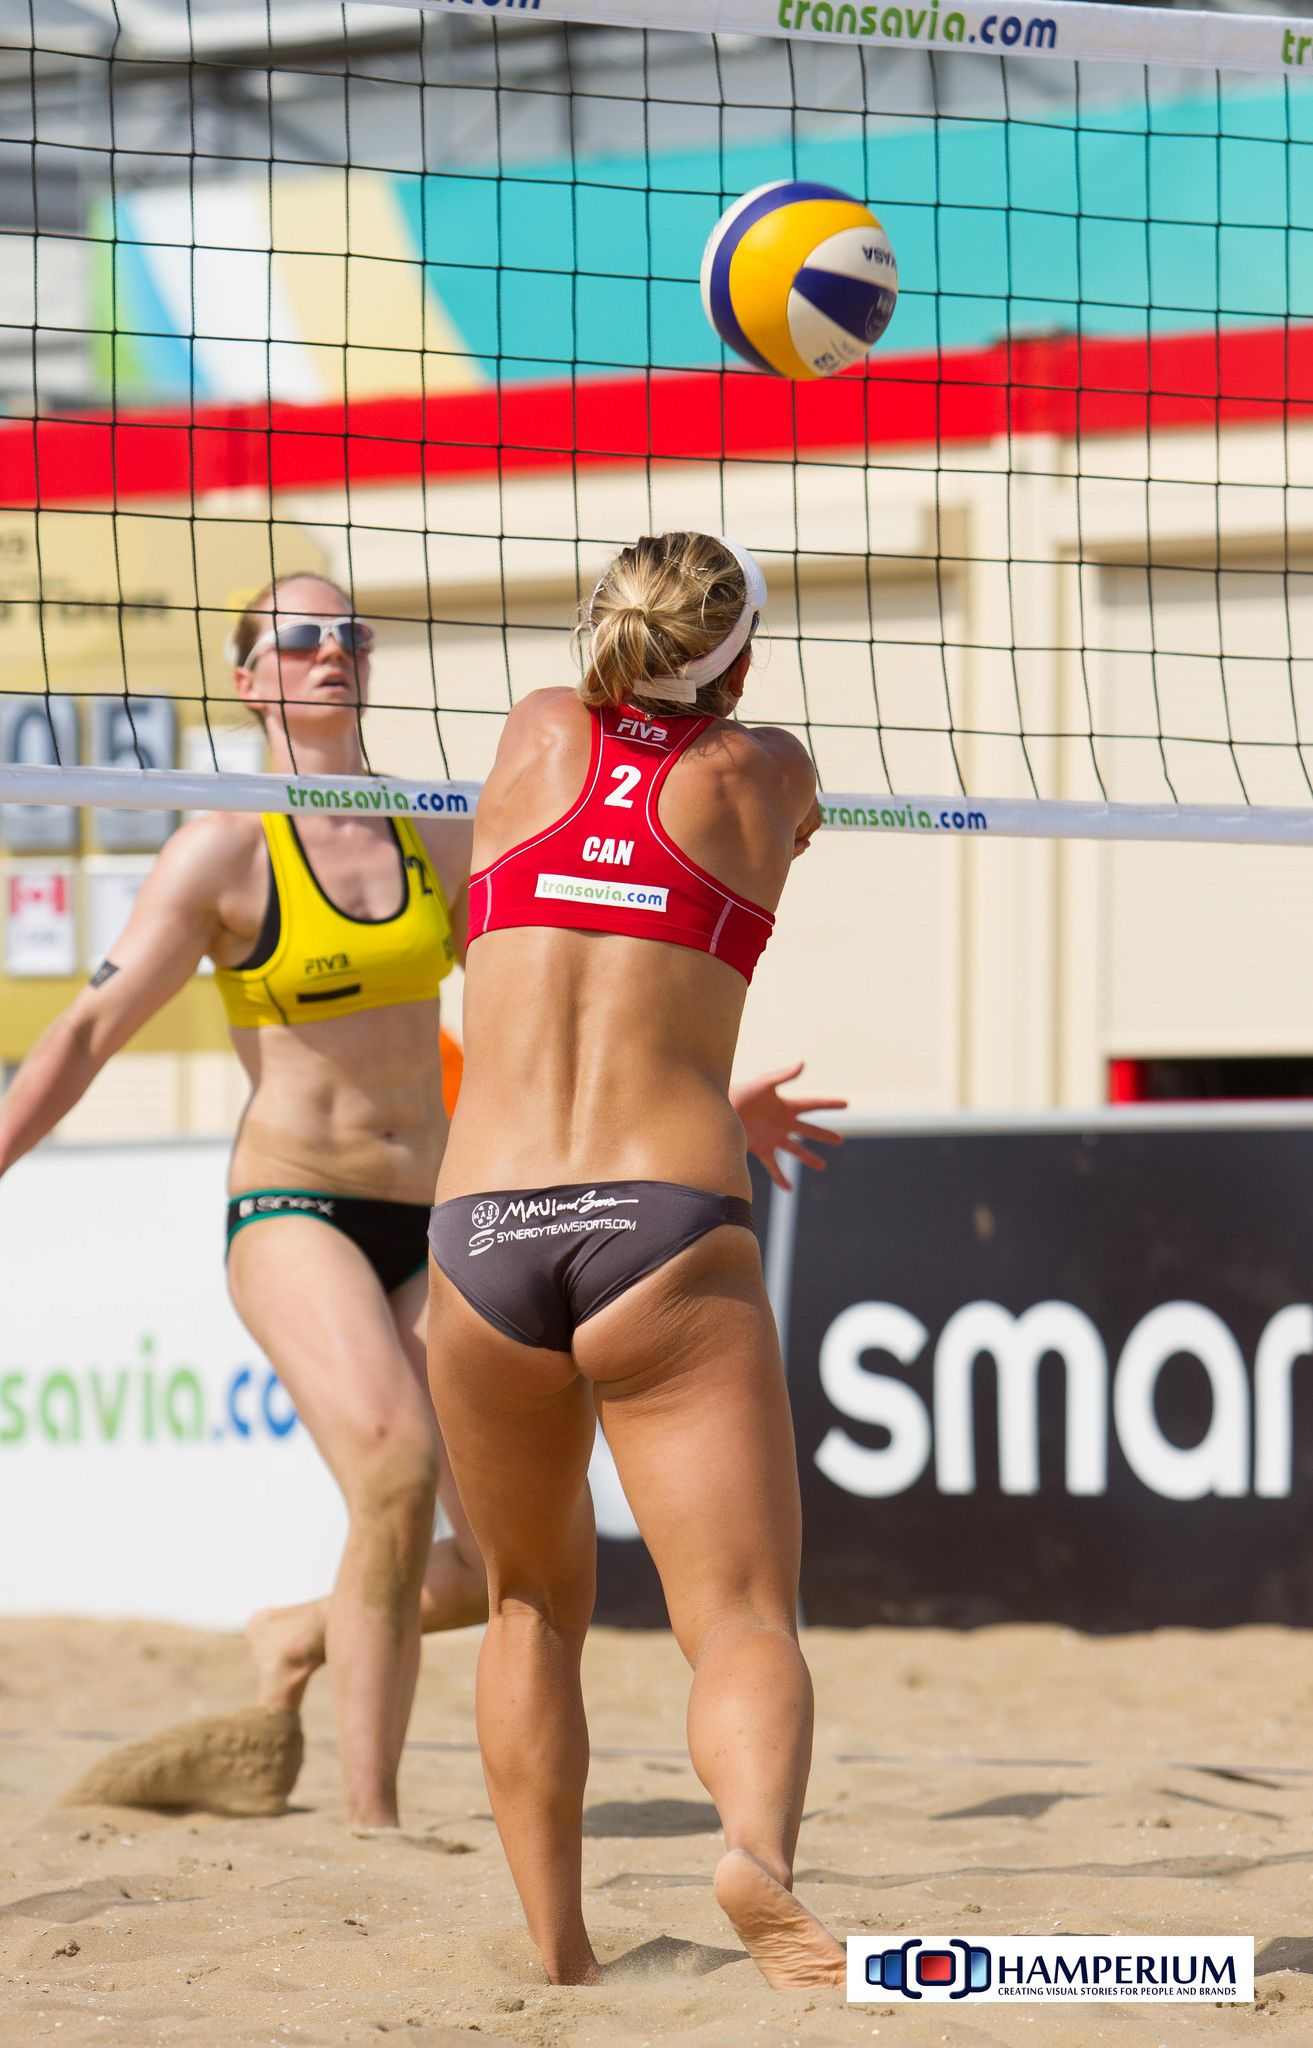 Pin By Mohit Soni On Female Volleyball In 2020 Volleyball Players Beach Volleyball Volleyball